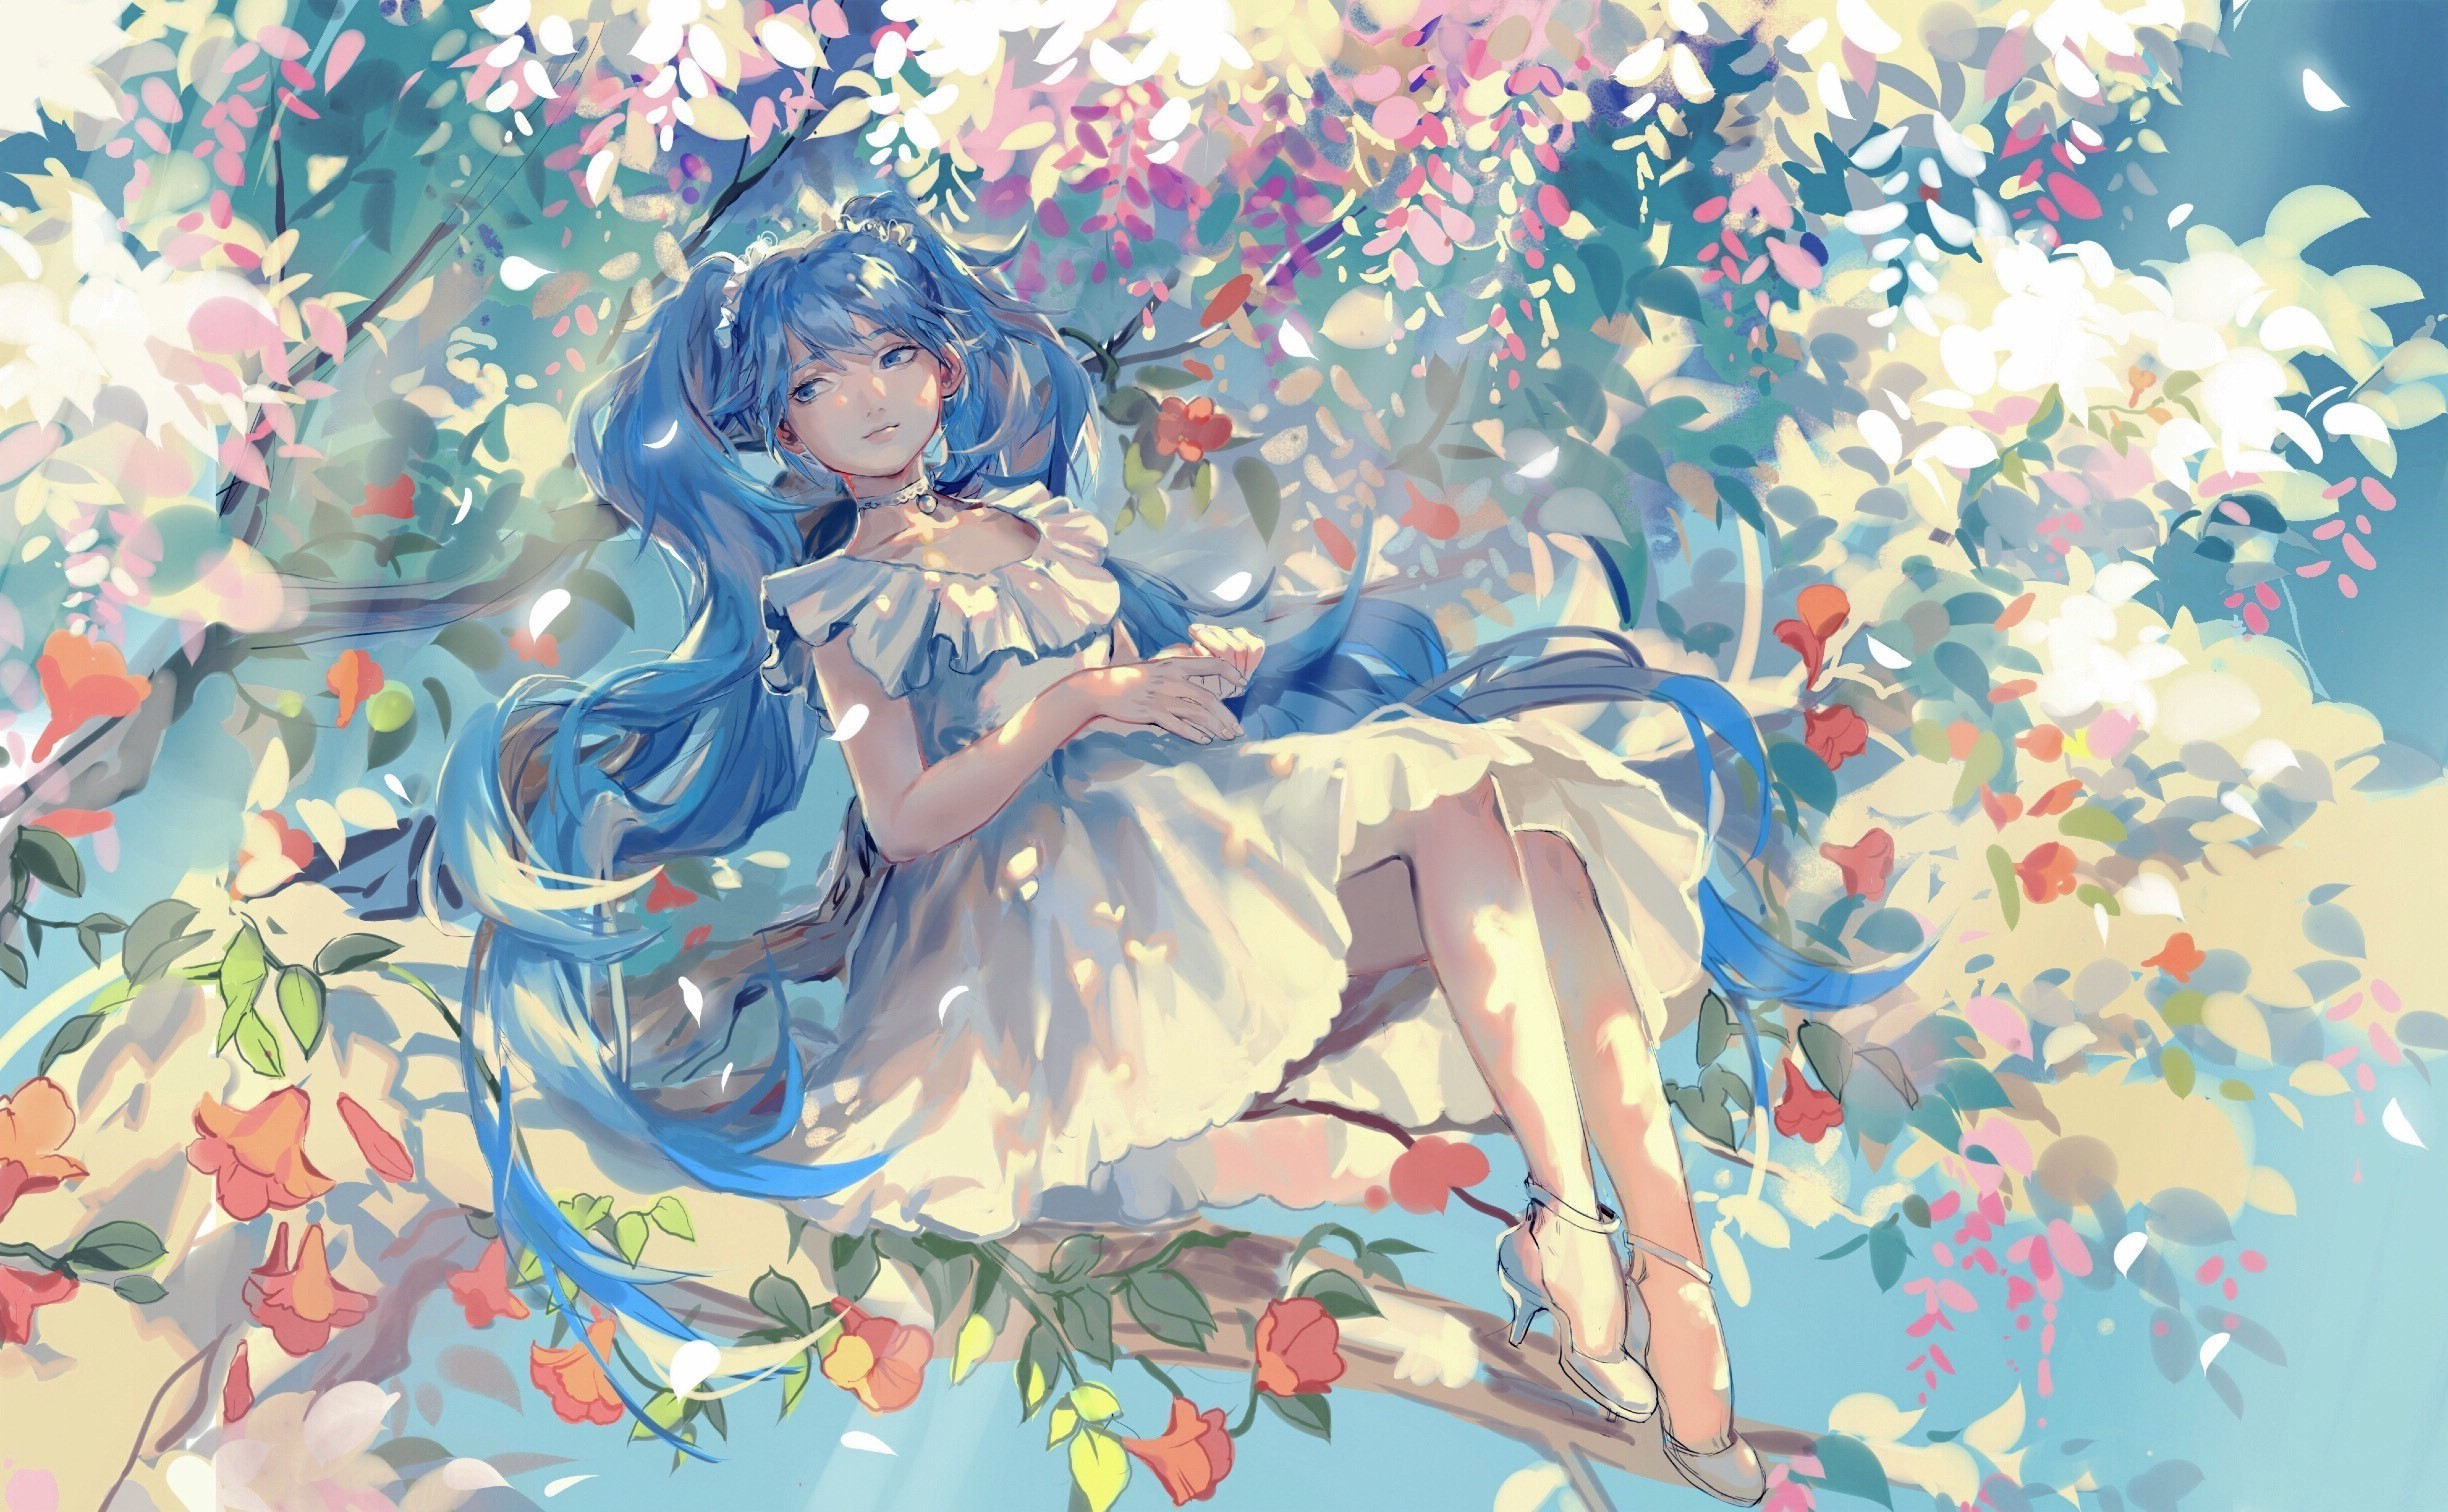 2448x1512 heels, Dress, Trees, Hatsune Miku, Vocaloid Wallpapers HD / Desktop and  Mobile Backgrounds